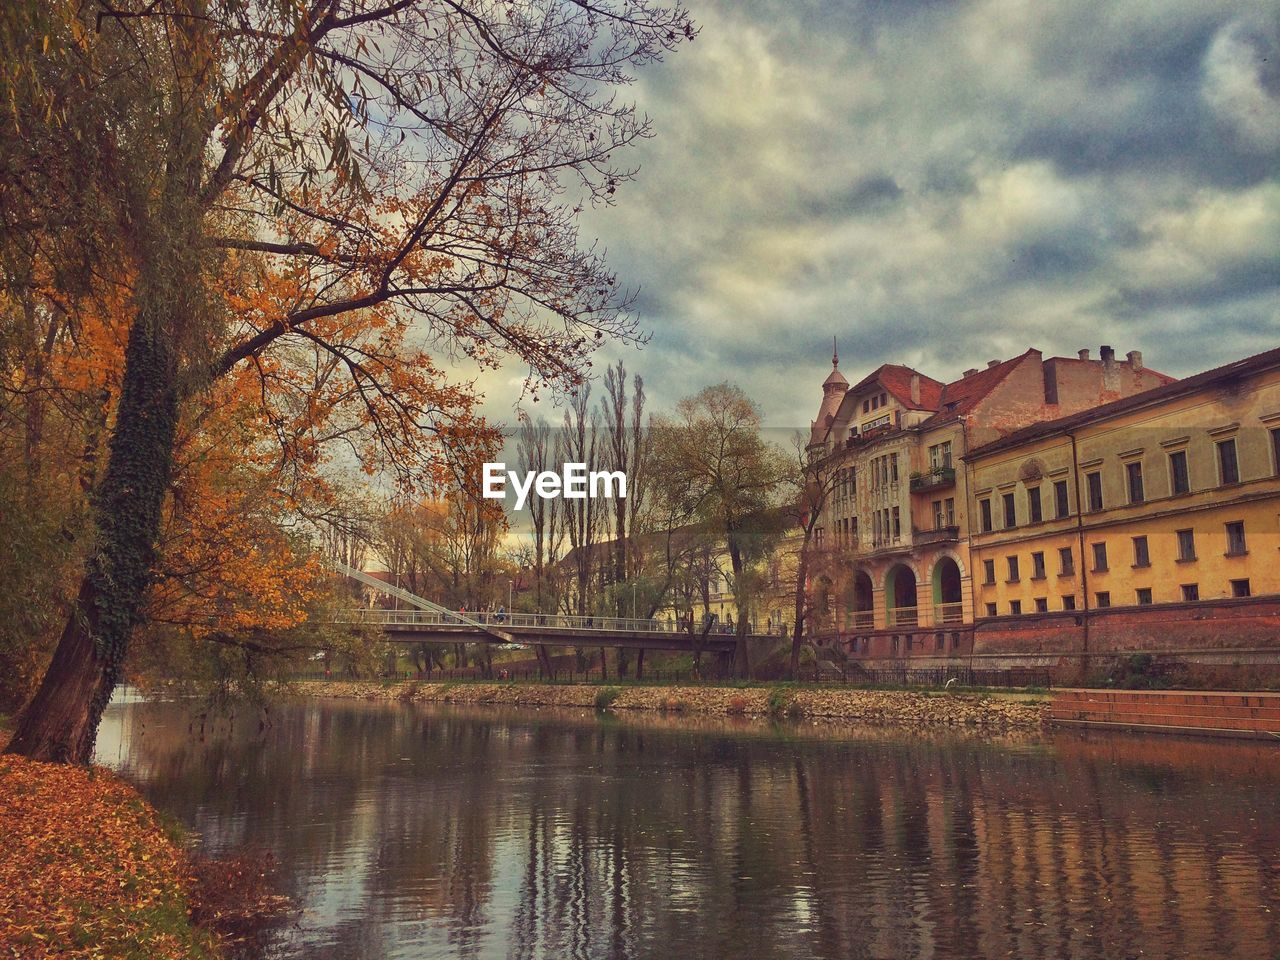 architecture, building exterior, sky, reflection, tree, autumn, built structure, no people, water, nature, outdoors, scenery, residential, city, day